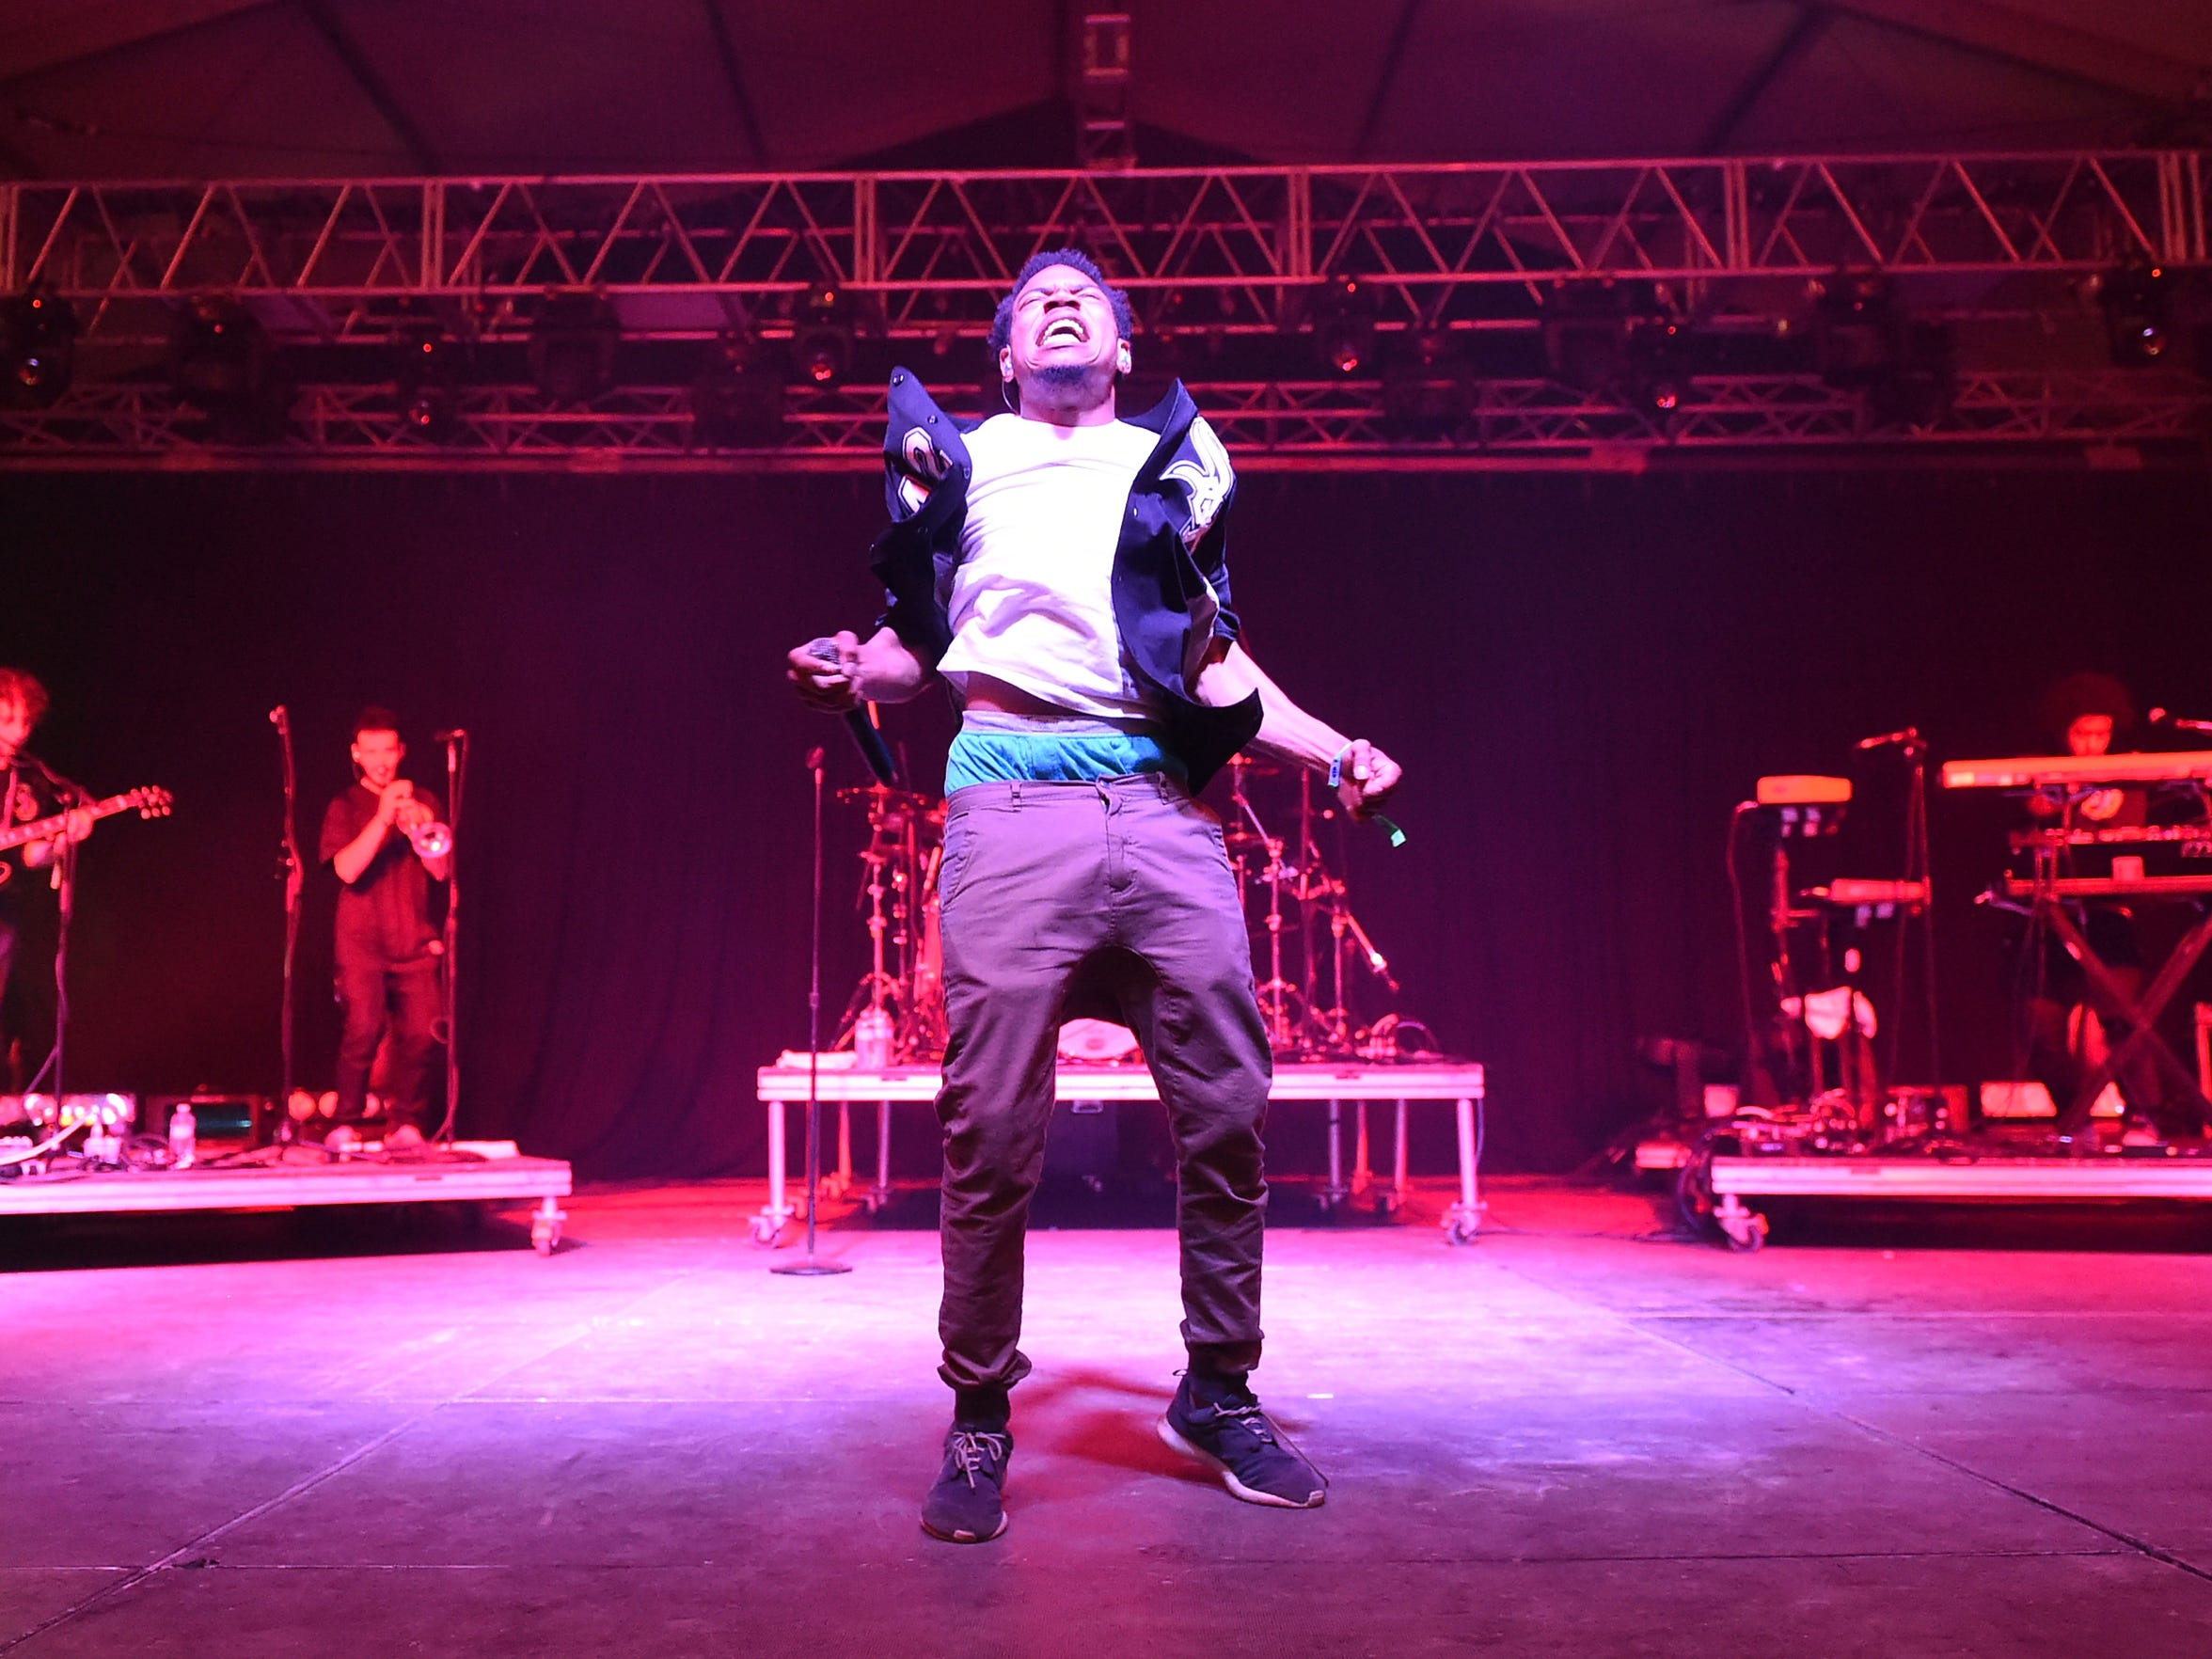 Chance The Rapper performs at the Bonnaroo Music & Arts Festival on June 13, 2014.